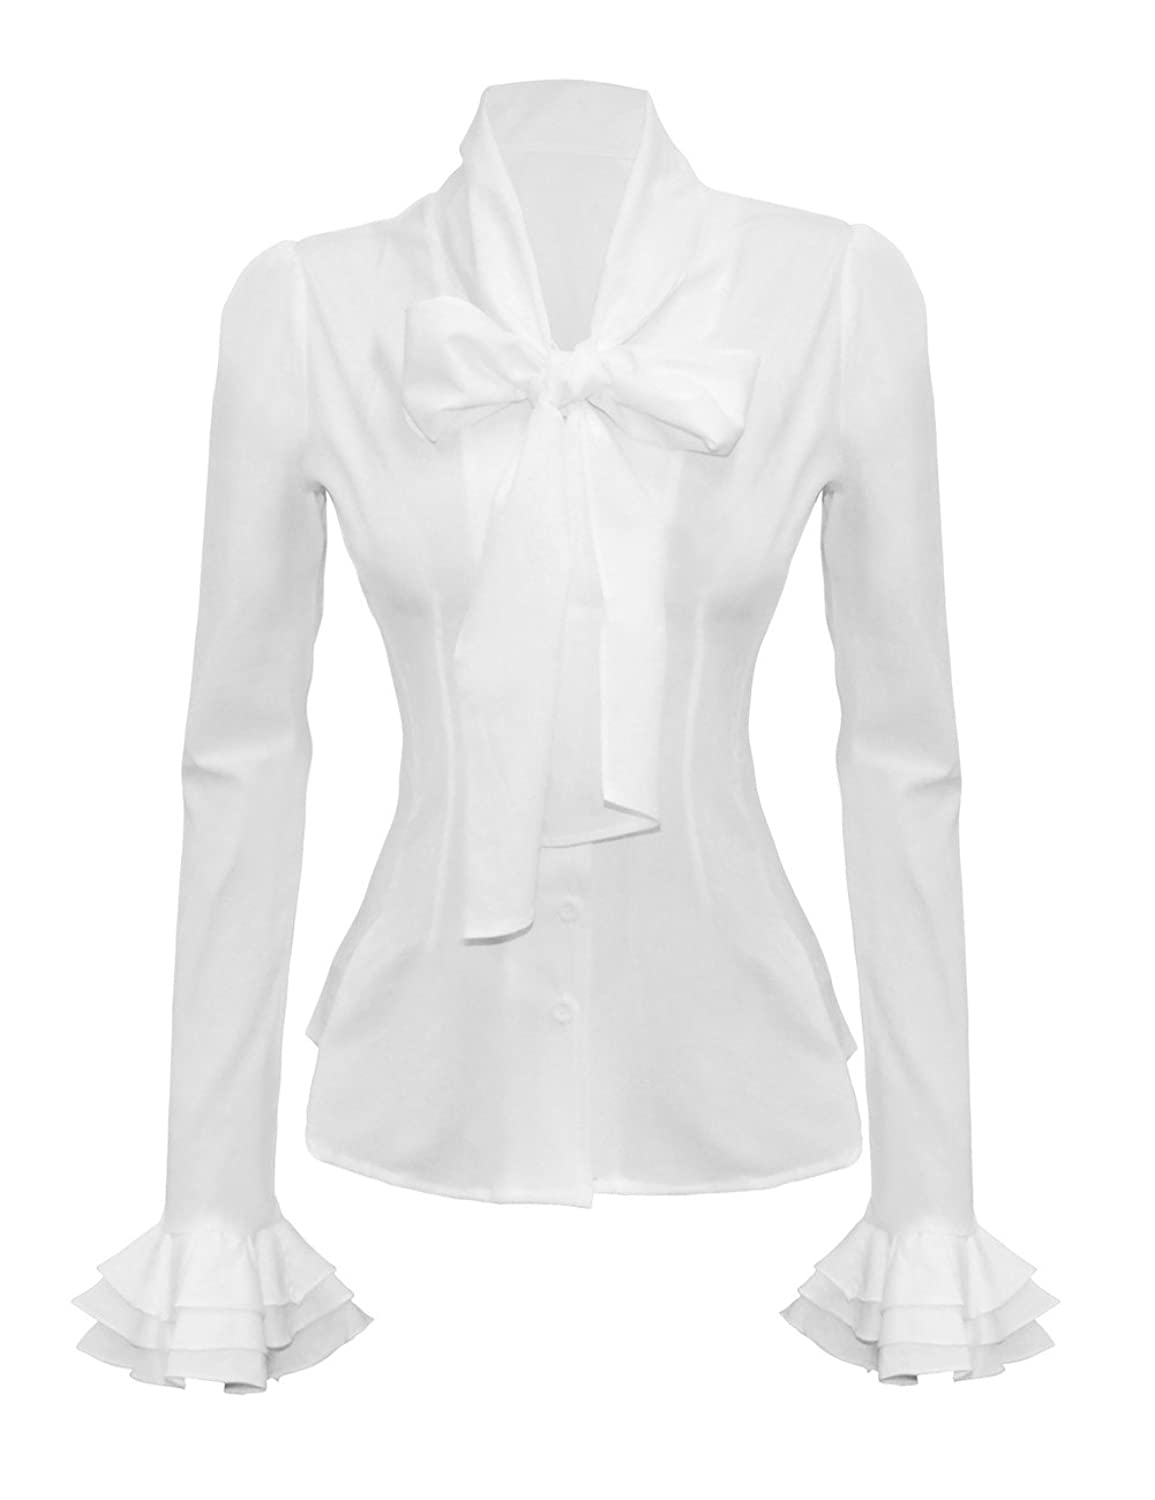 Vintage Bow Tie Neck Long Sleeve Shirt Blouse Tops $23.99 AT vintagedancer.com